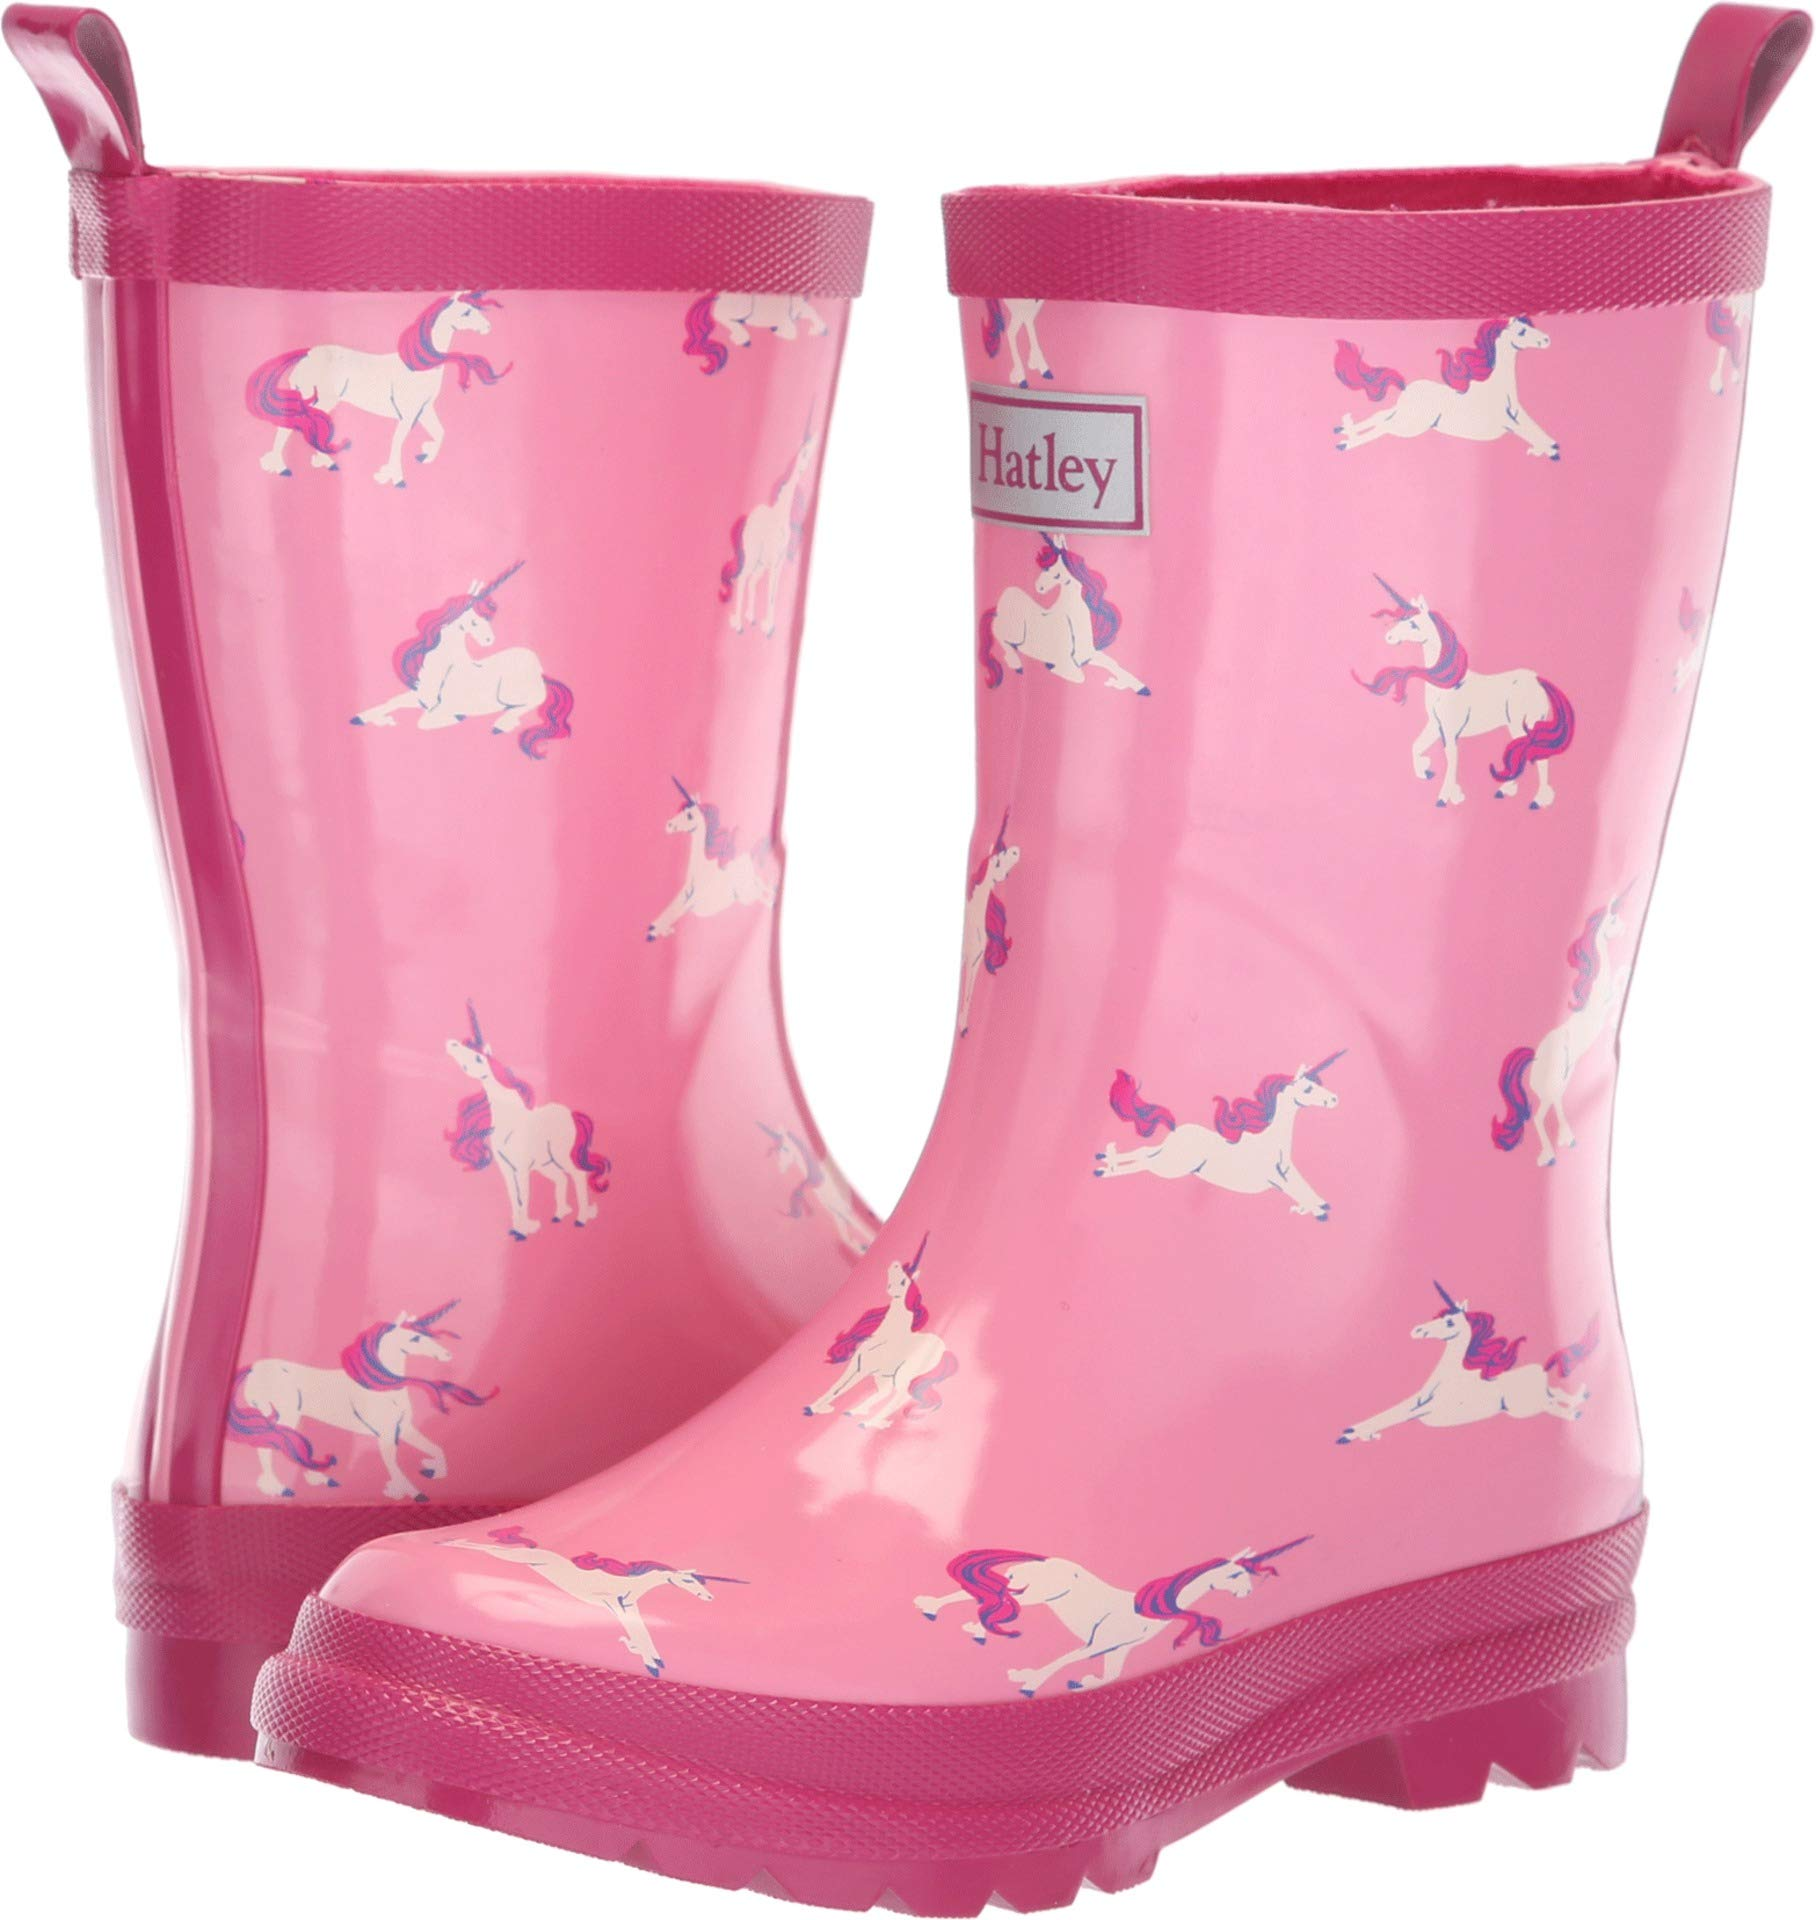 Hatley Kids Baby Girl's Limited Edition Rain Boots (Toddler/Little Kid) Majestic Unicorns Pink 4 M US Toddler M